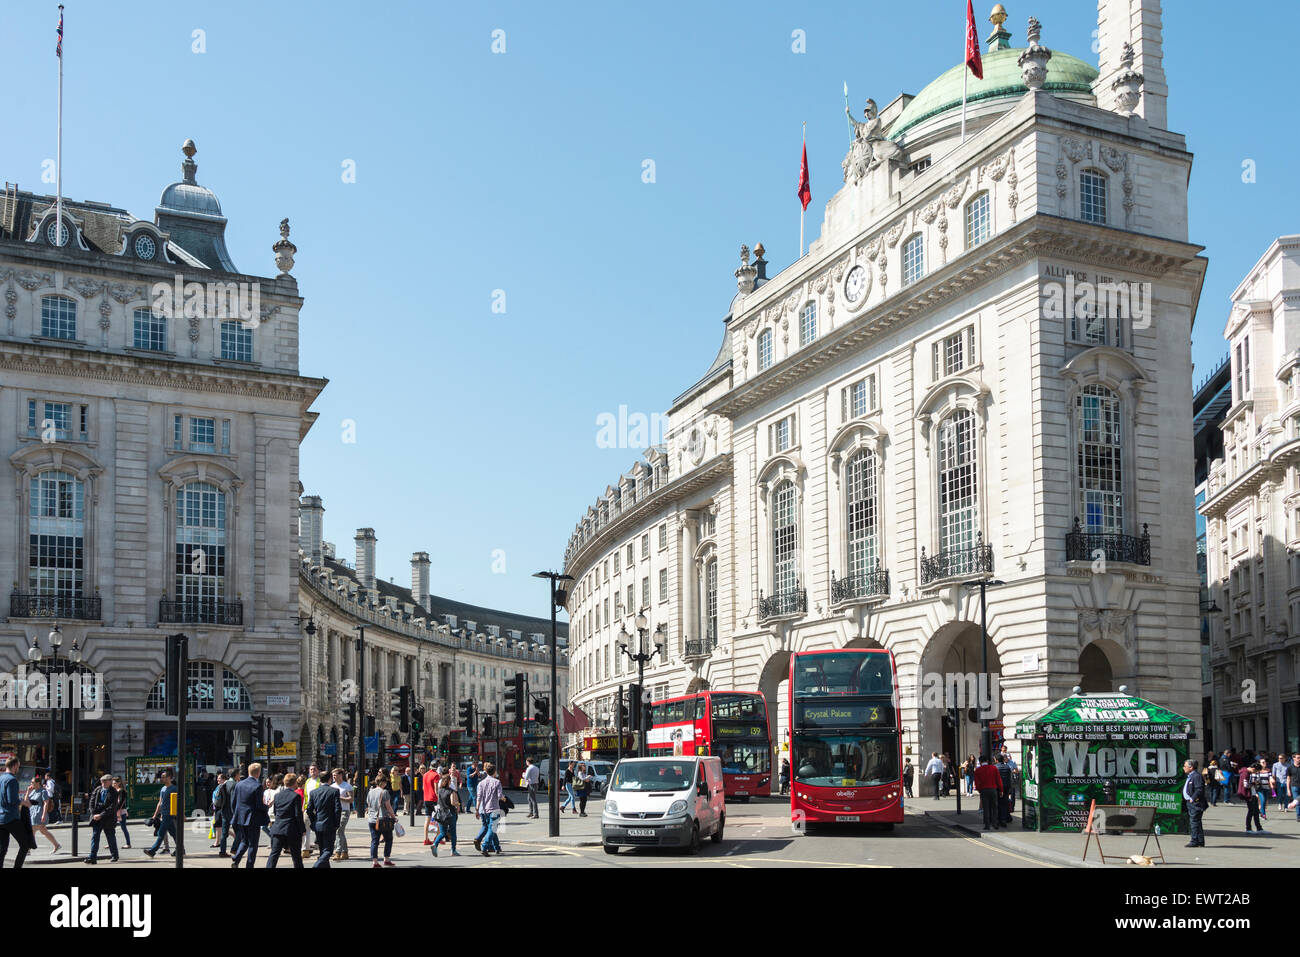 View towards Regent Street from Piccadilly Circus, West End, City of Westminster, London, England, United Kingdom - Stock Image